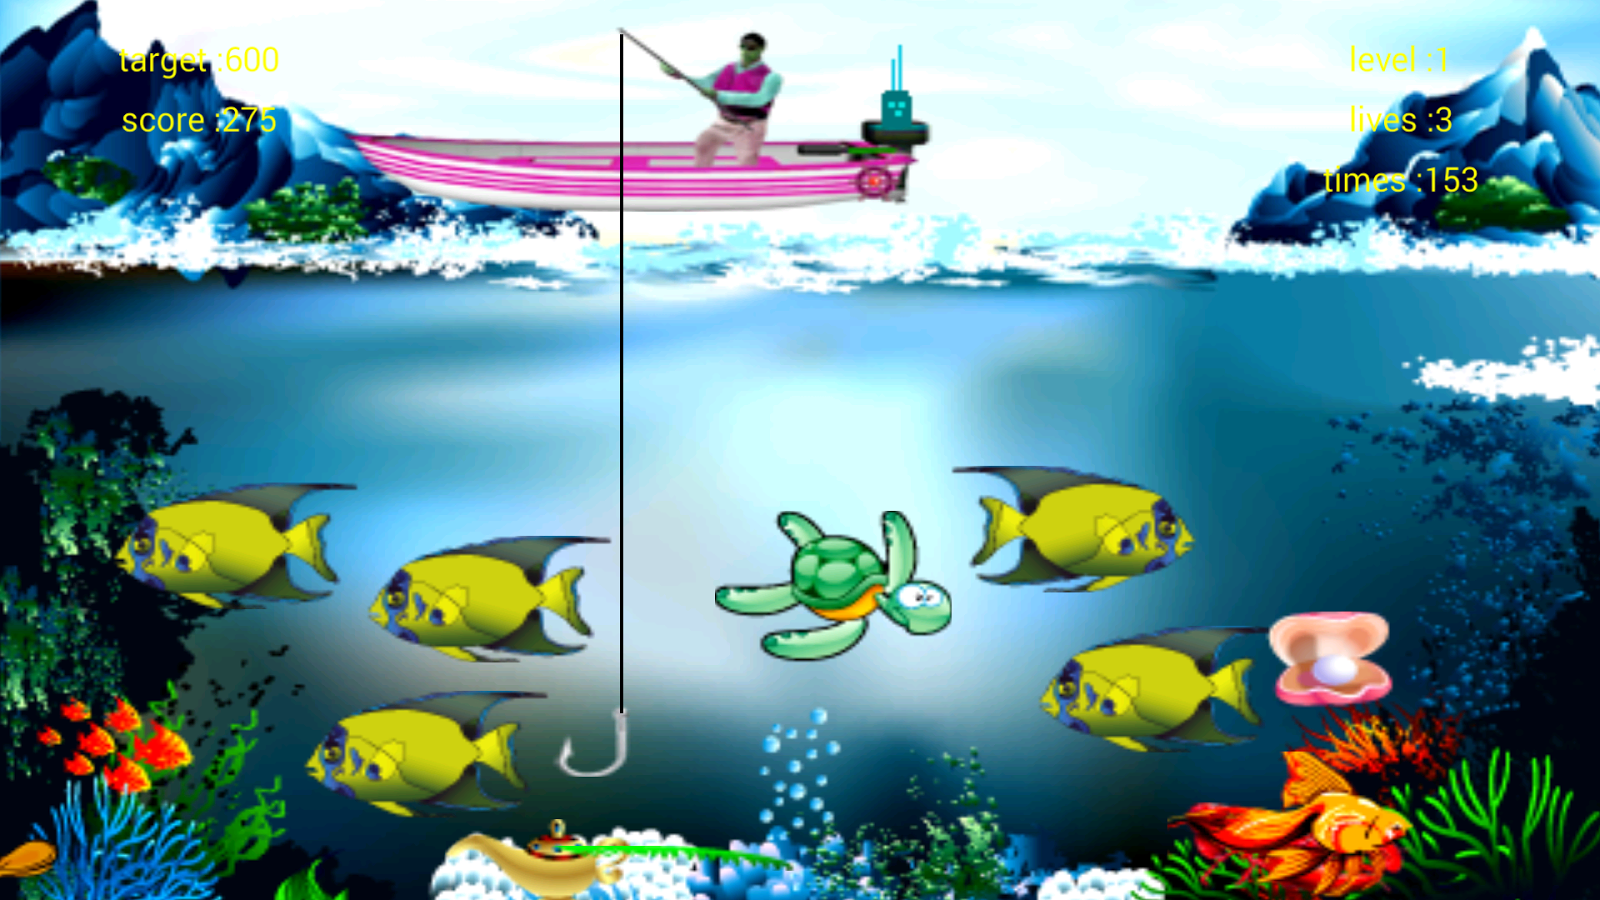 Fishing game android apps on google play for Fishing tournament app